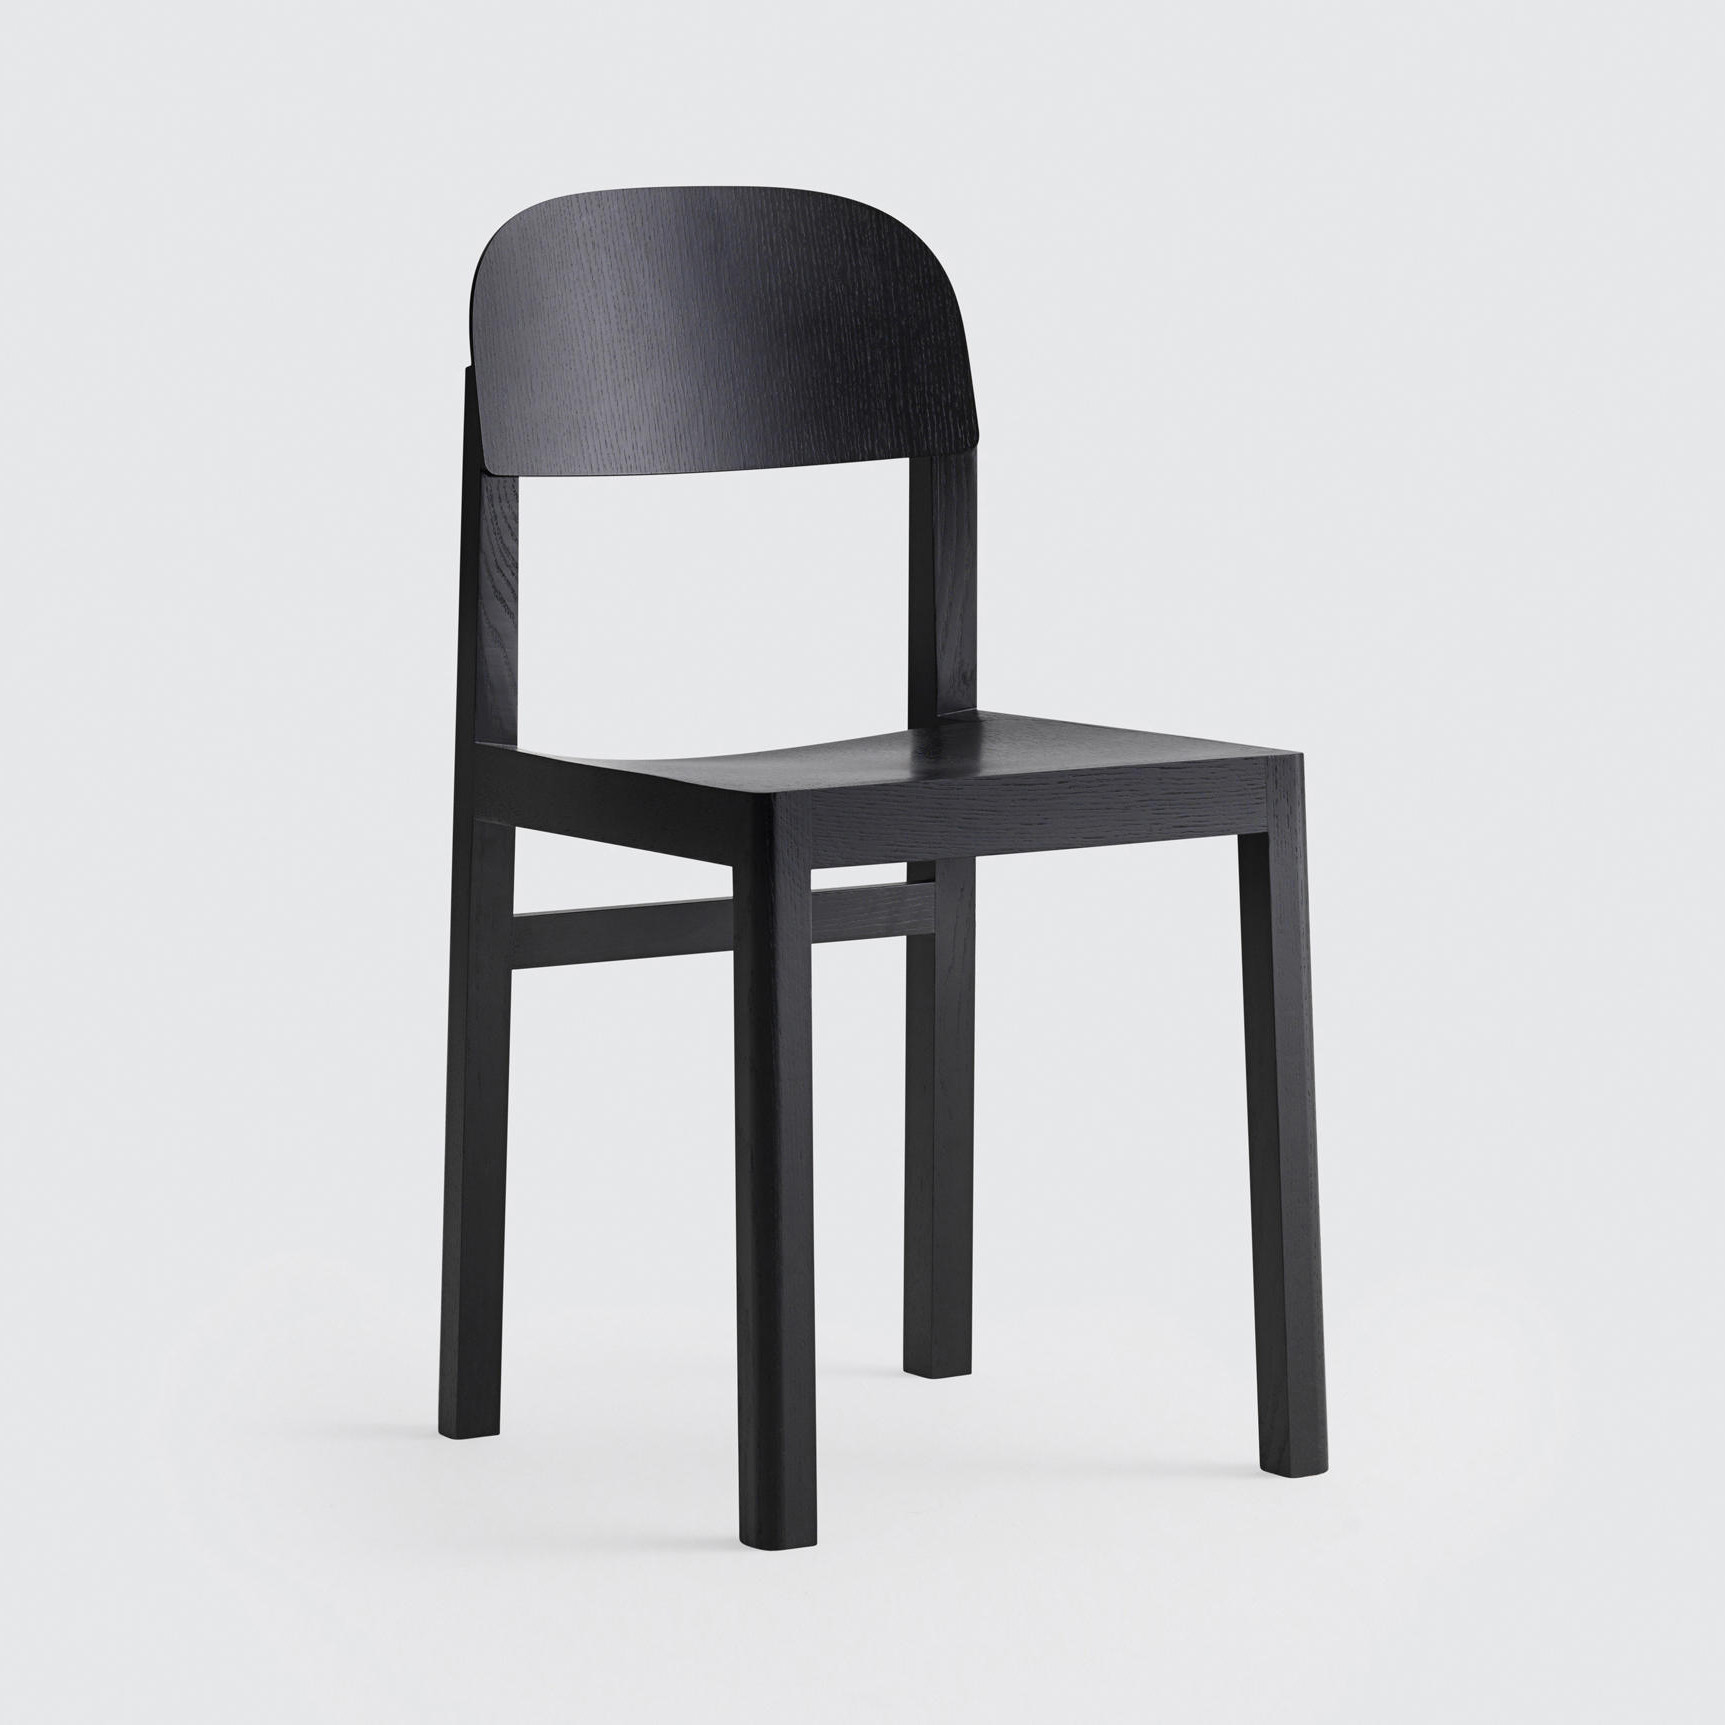 Workshop chair, black